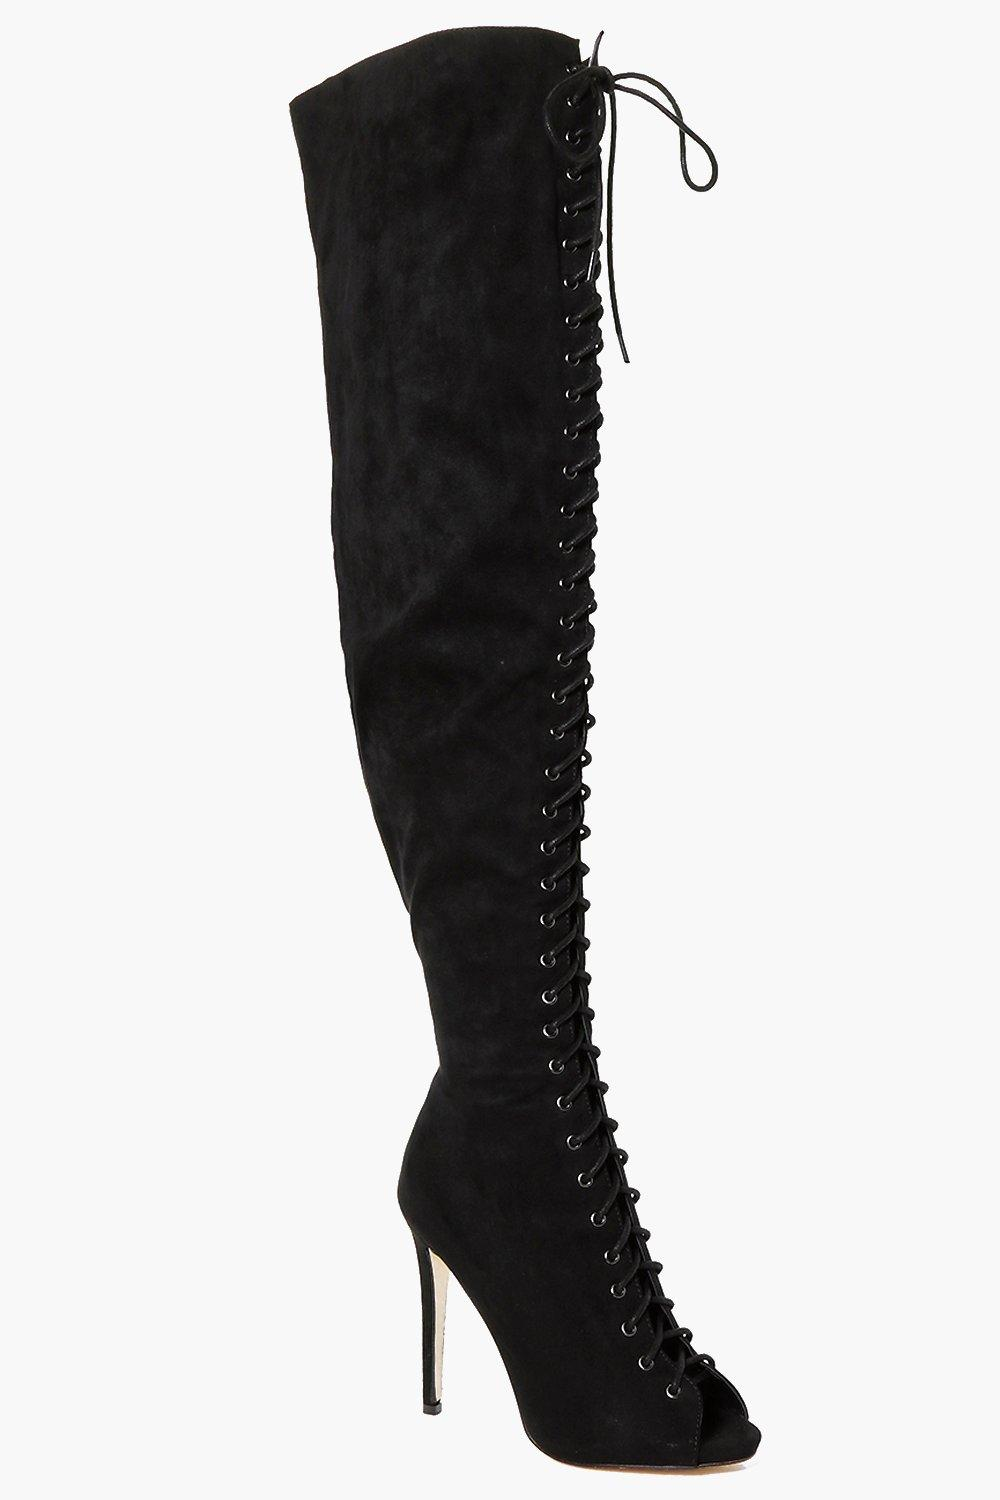 Lucy Lace Up Peeptoe Over The Knee Boot at boohoo.com